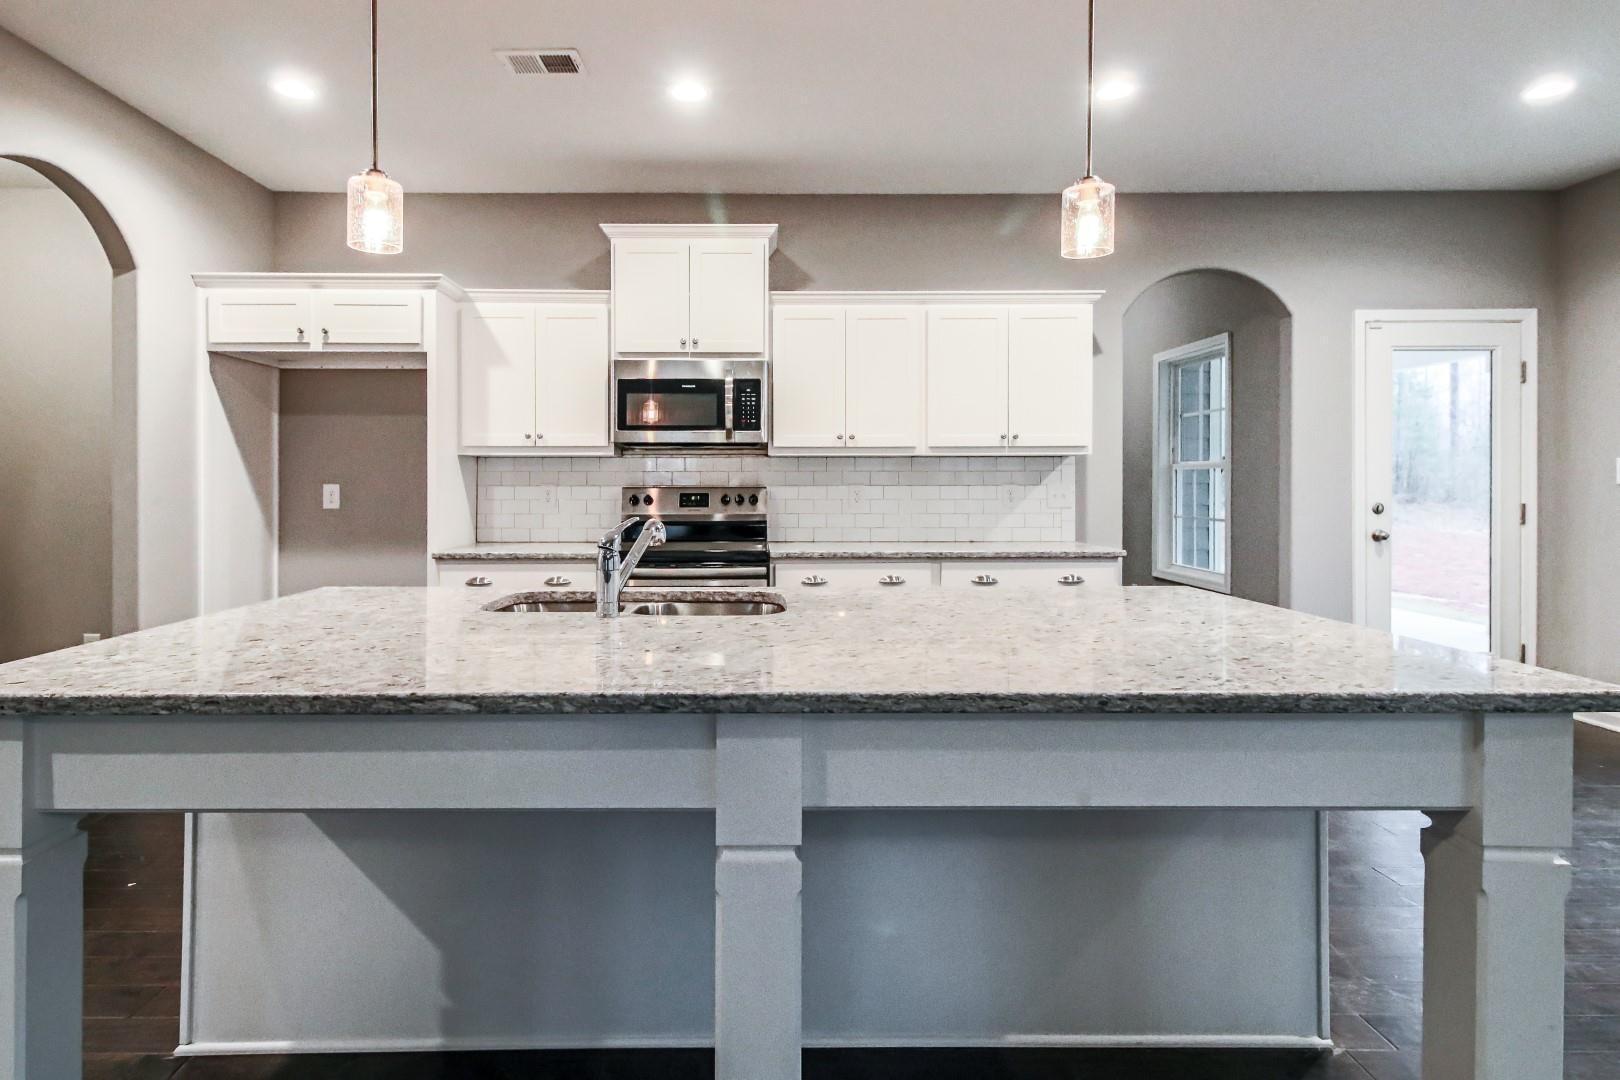 Kitchen featured in the Magnolia By Hughston Homes in Macon, GA